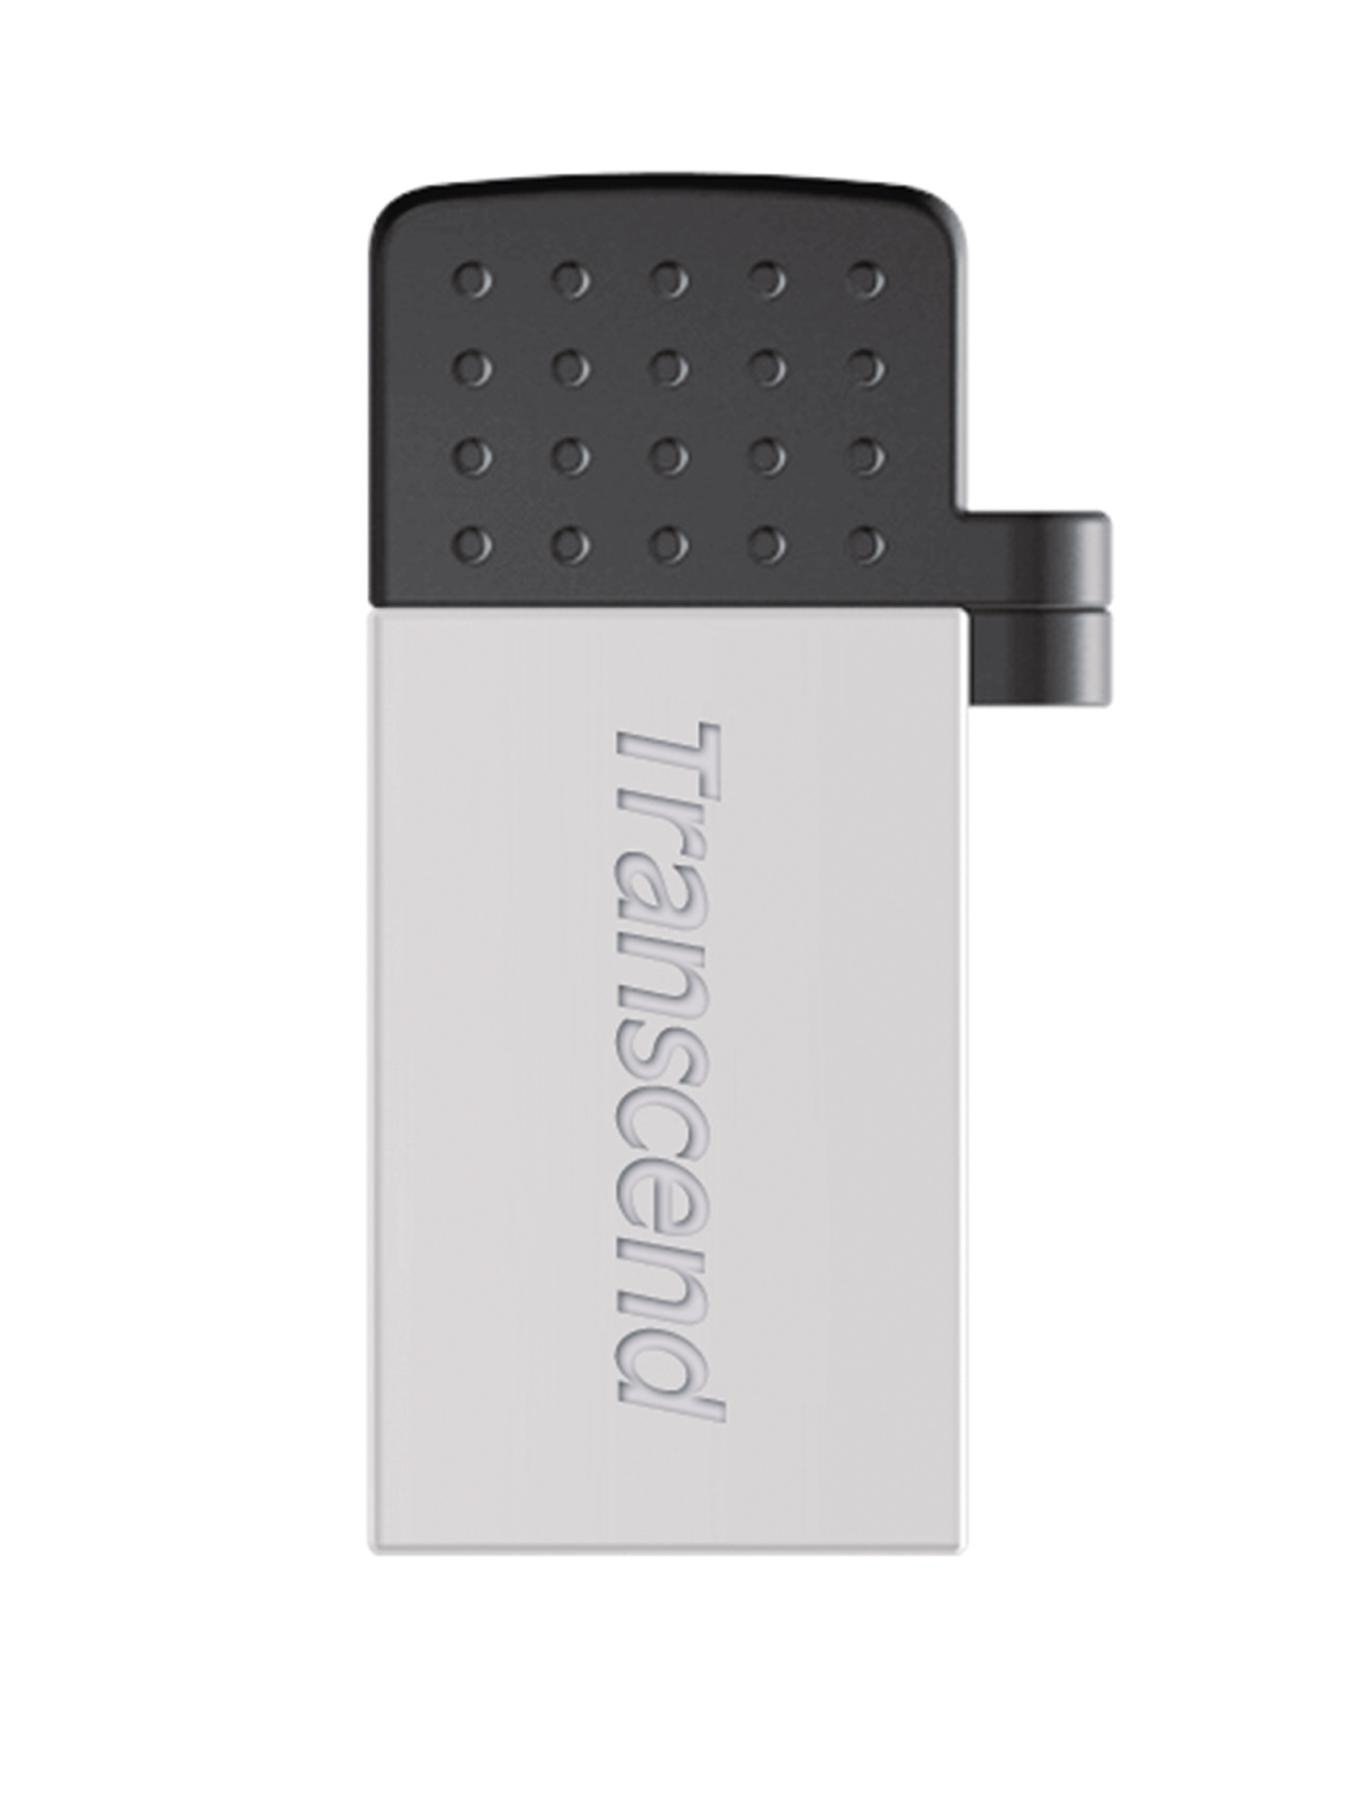 Transcend JetFlash 380 32Gb USB Flash Drive - Silver Plated